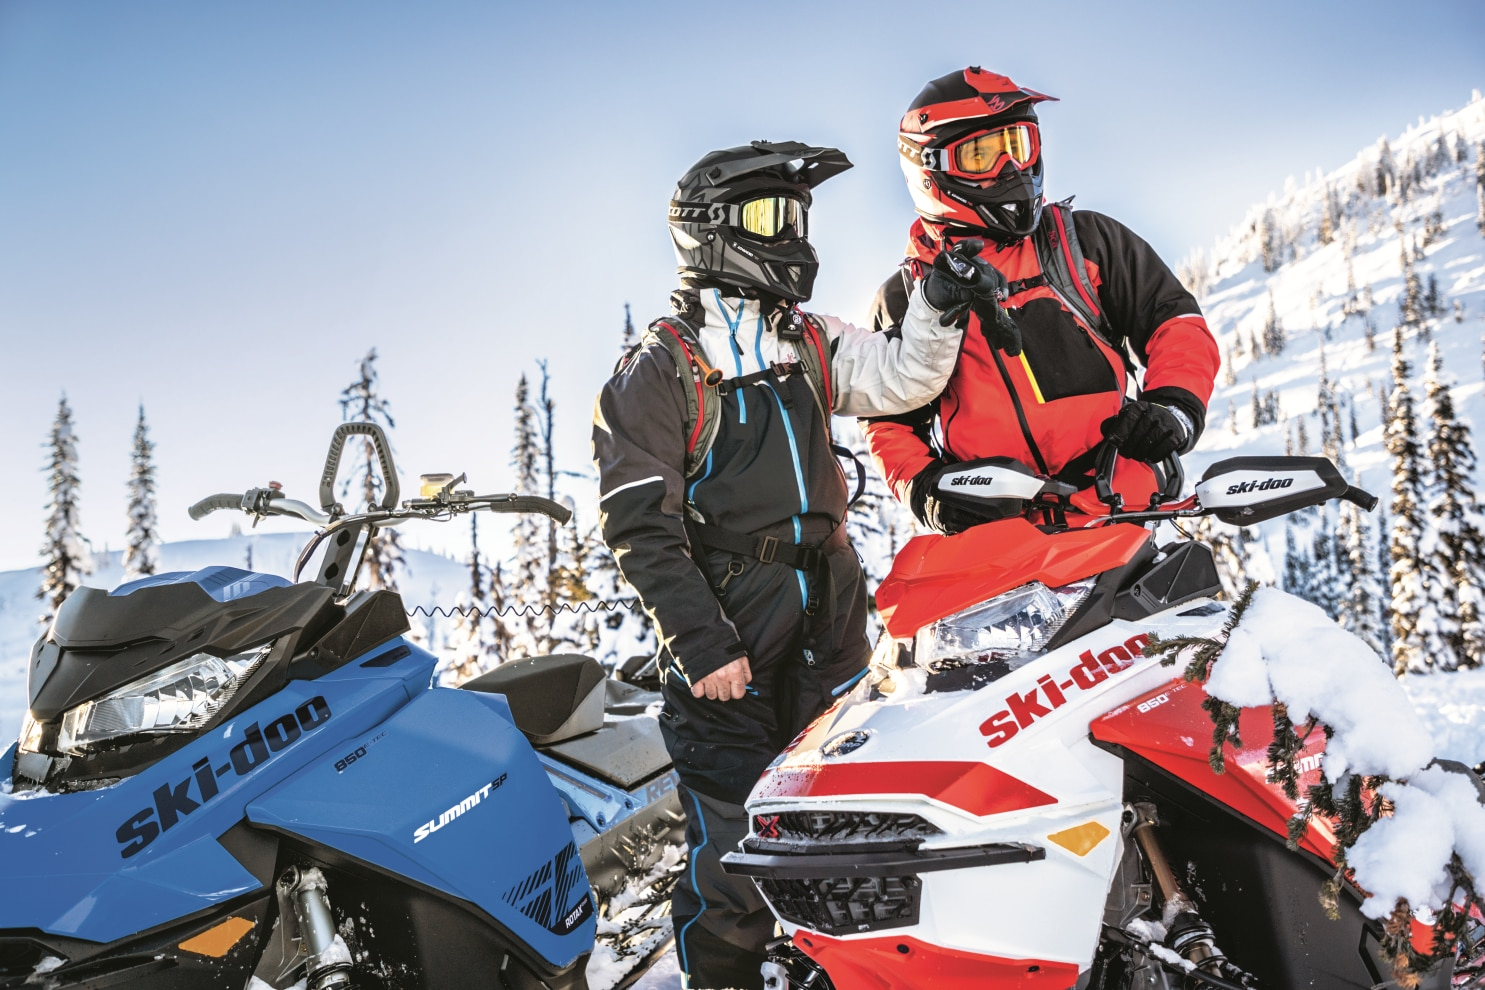 SKI-DOO MAINTAINS FOCUS ON CUTTING-EDGE INNOVATION AND WOWS THE CROWD AT CLUB BRP